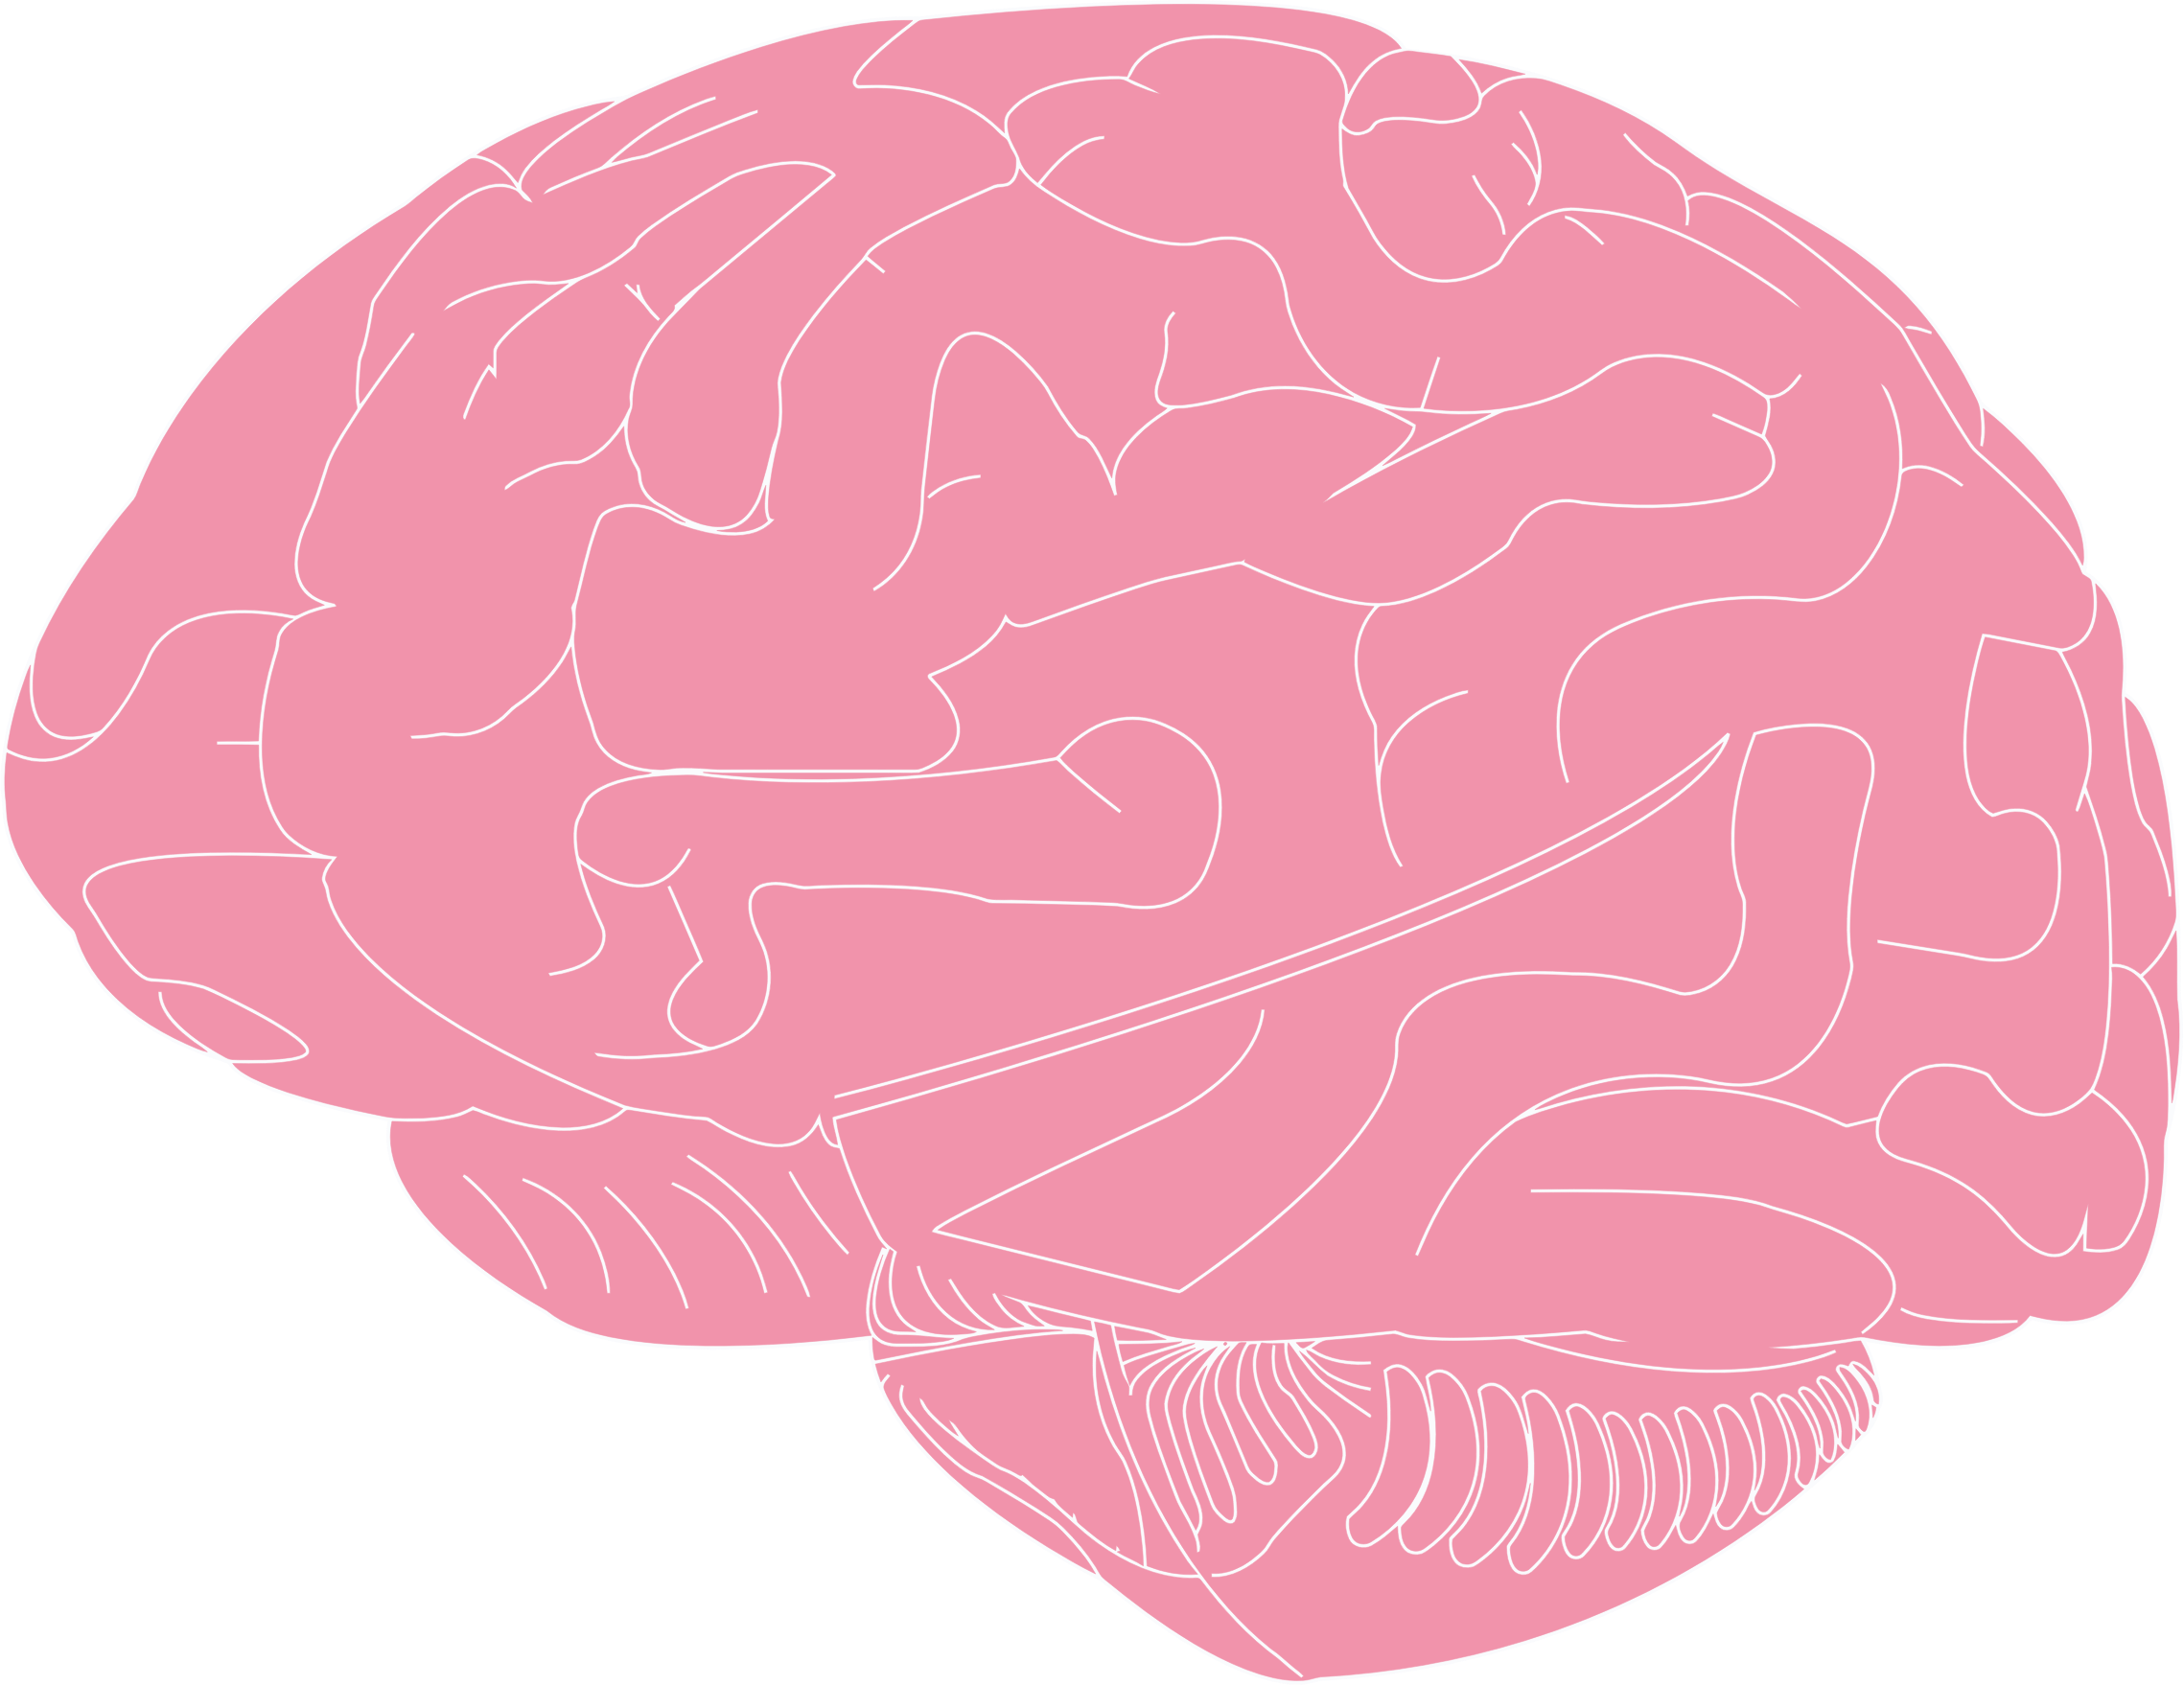 Brain big image png. Psychology clipart illustration